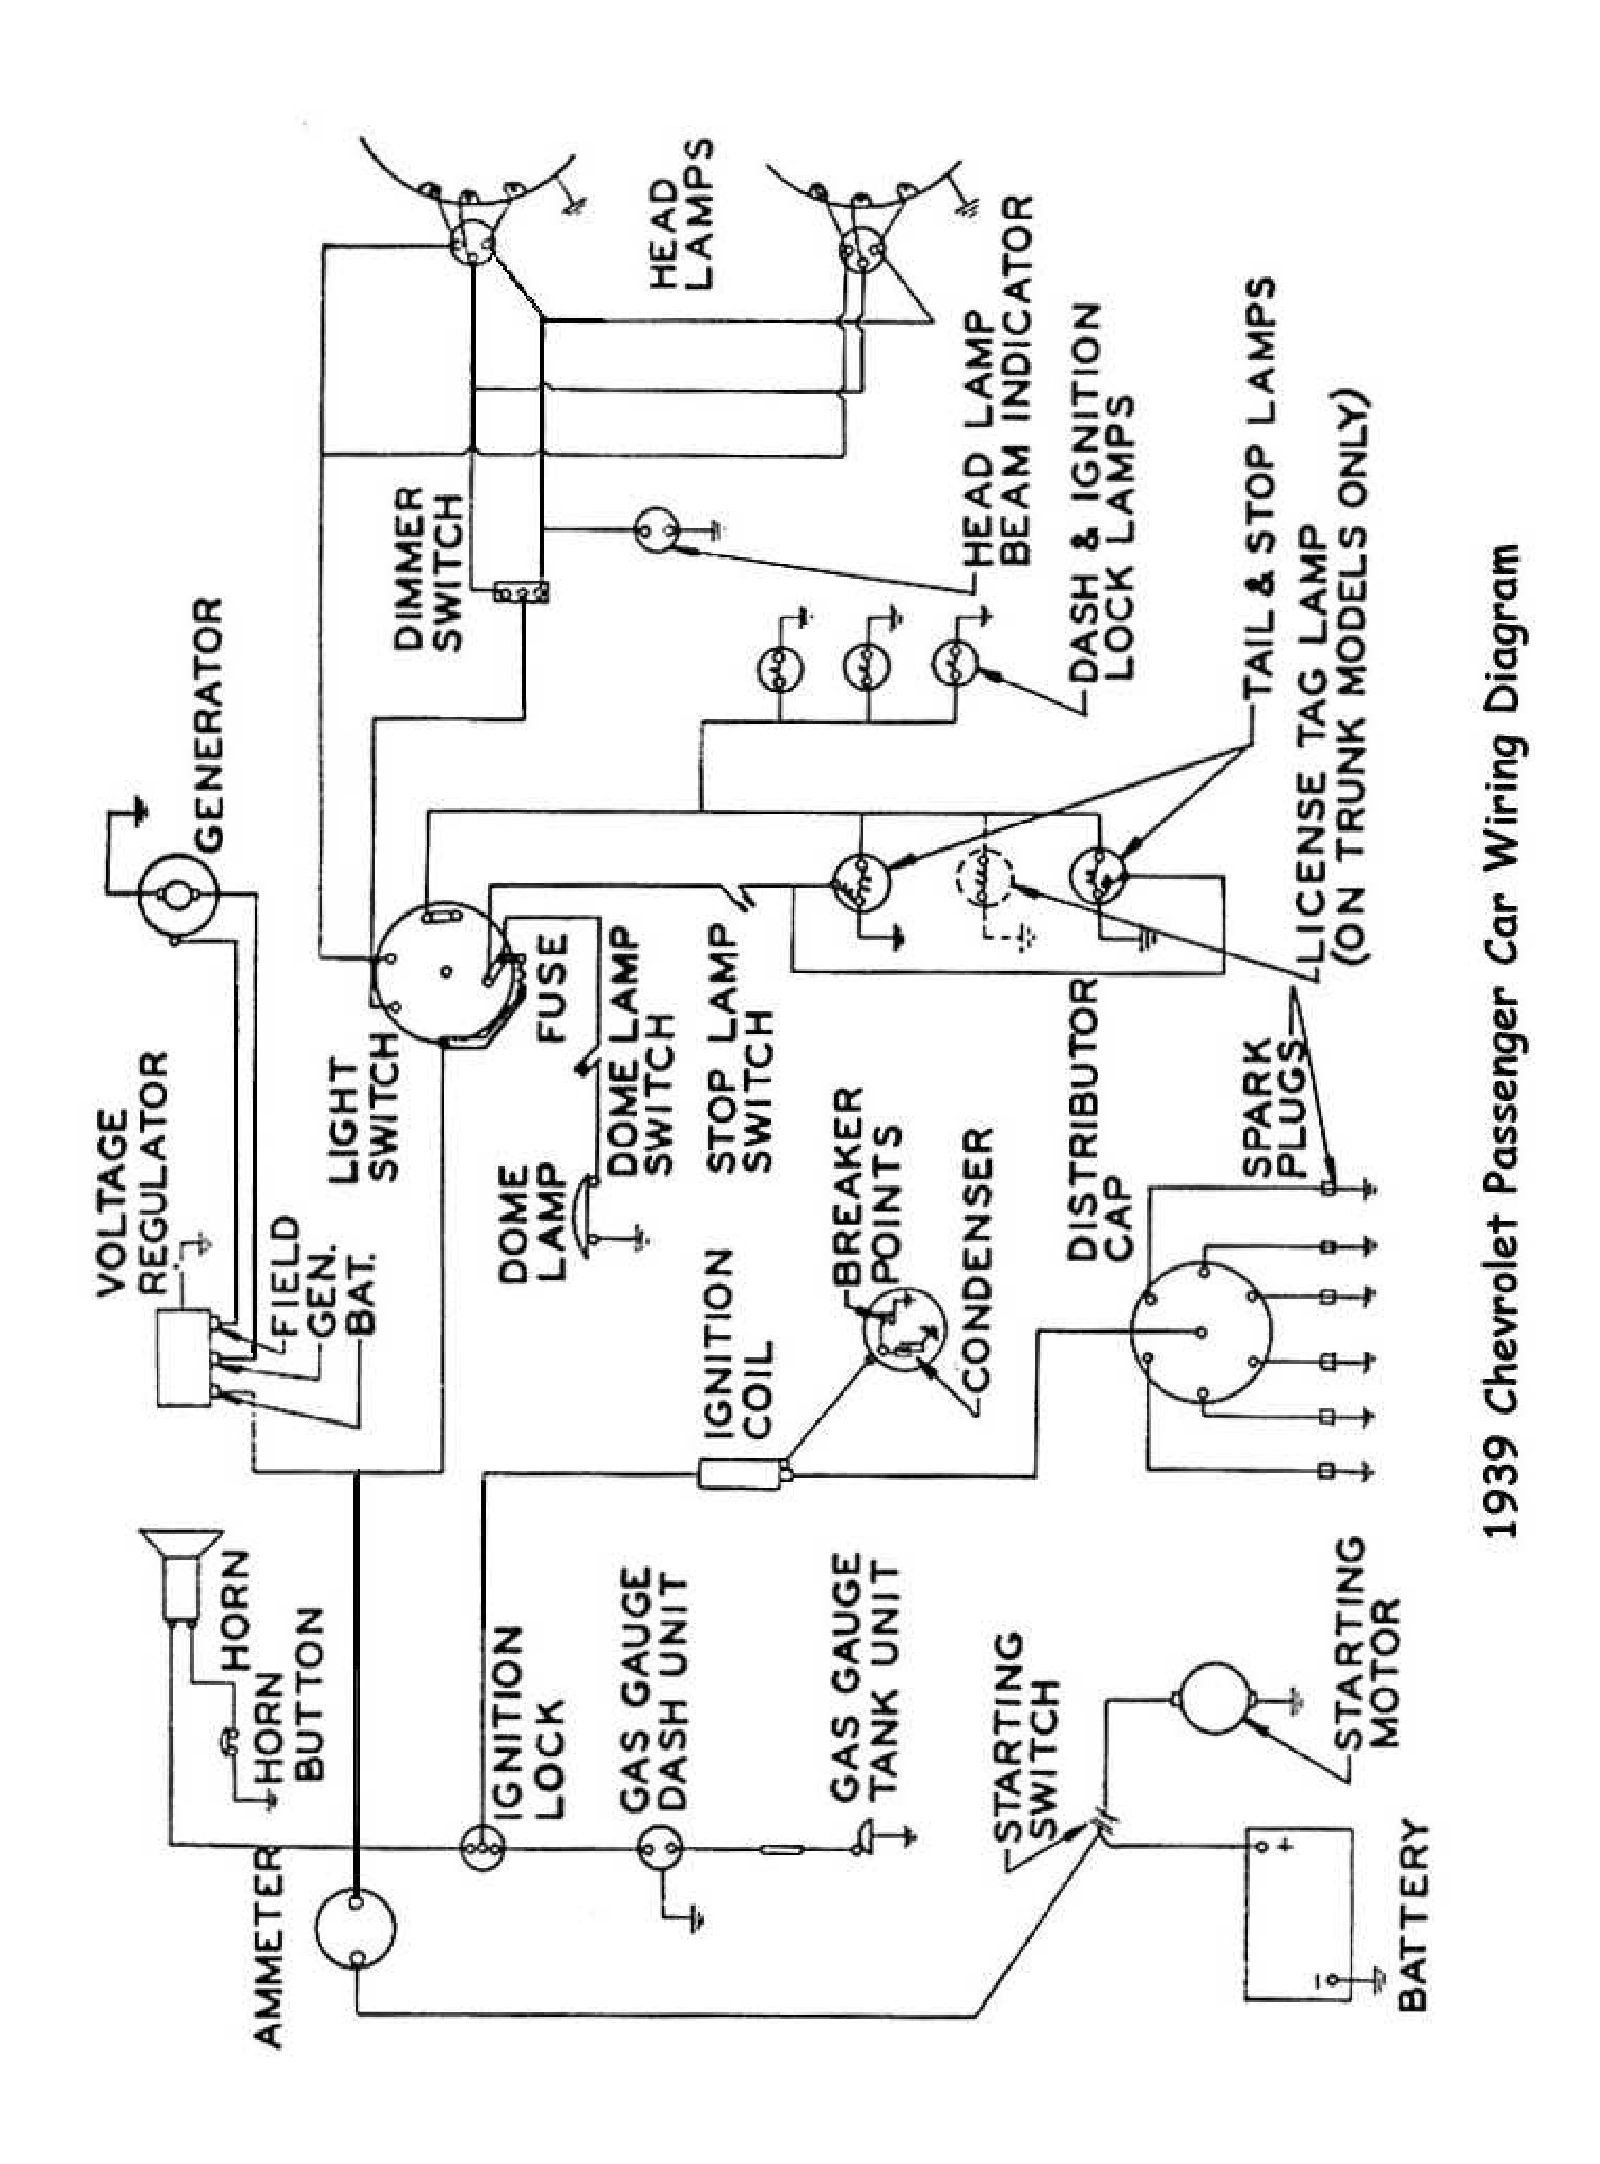 Dump Trailer Wiring Diagram Electrical Just Another Load Trail Imageresizertool Com Find Schematic